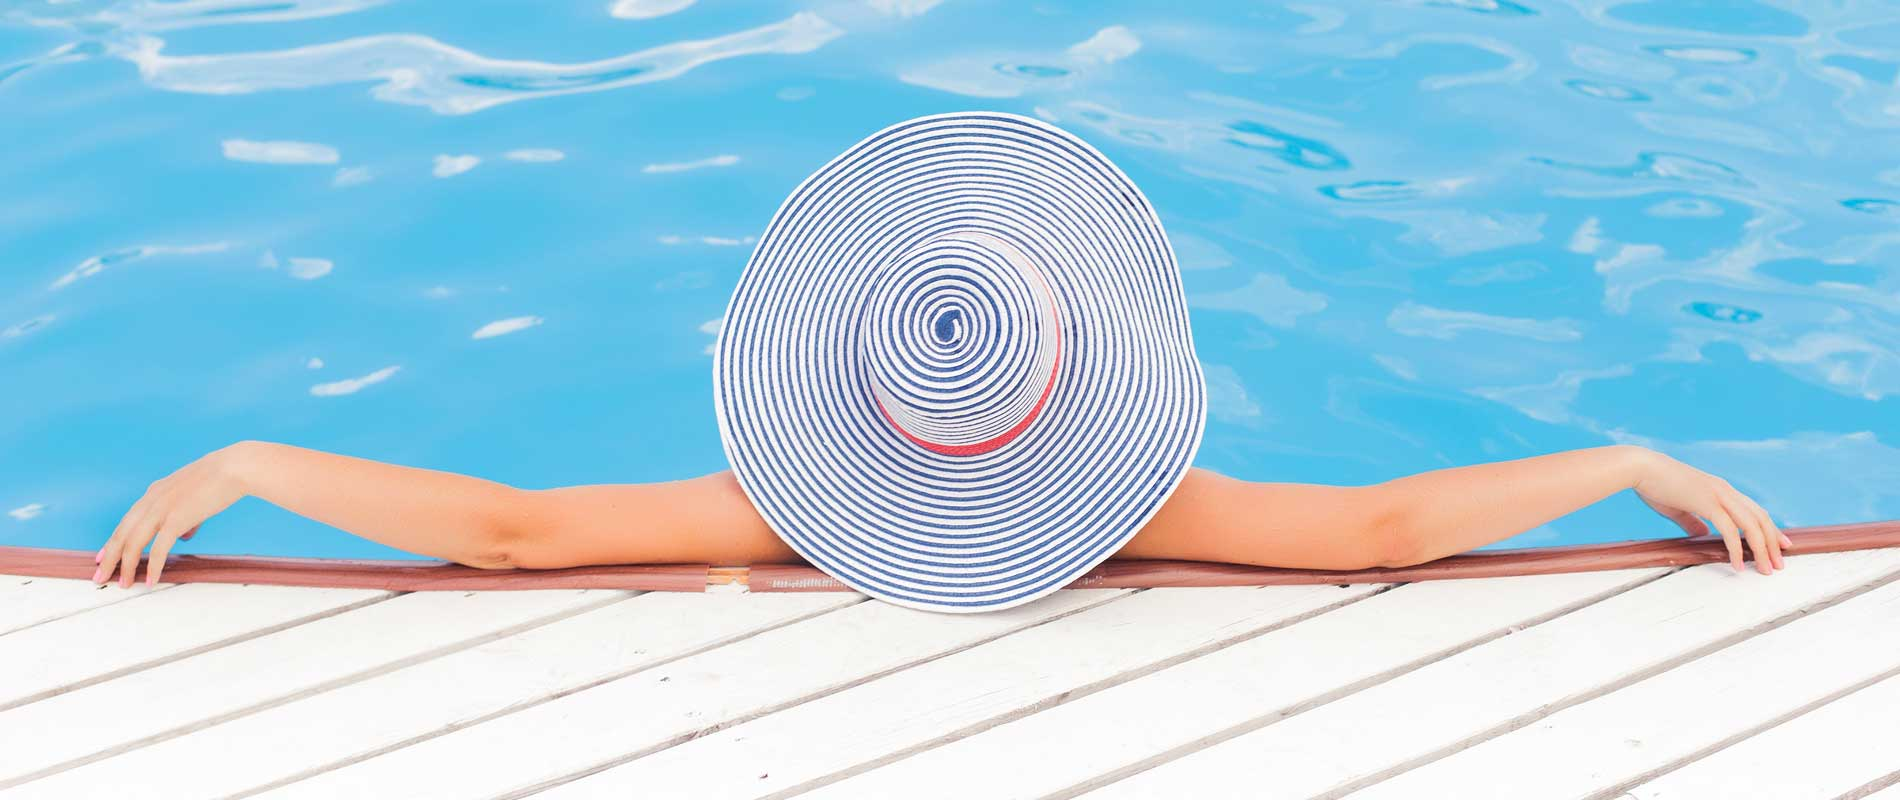 Woman Wearing a Hat in the Pool